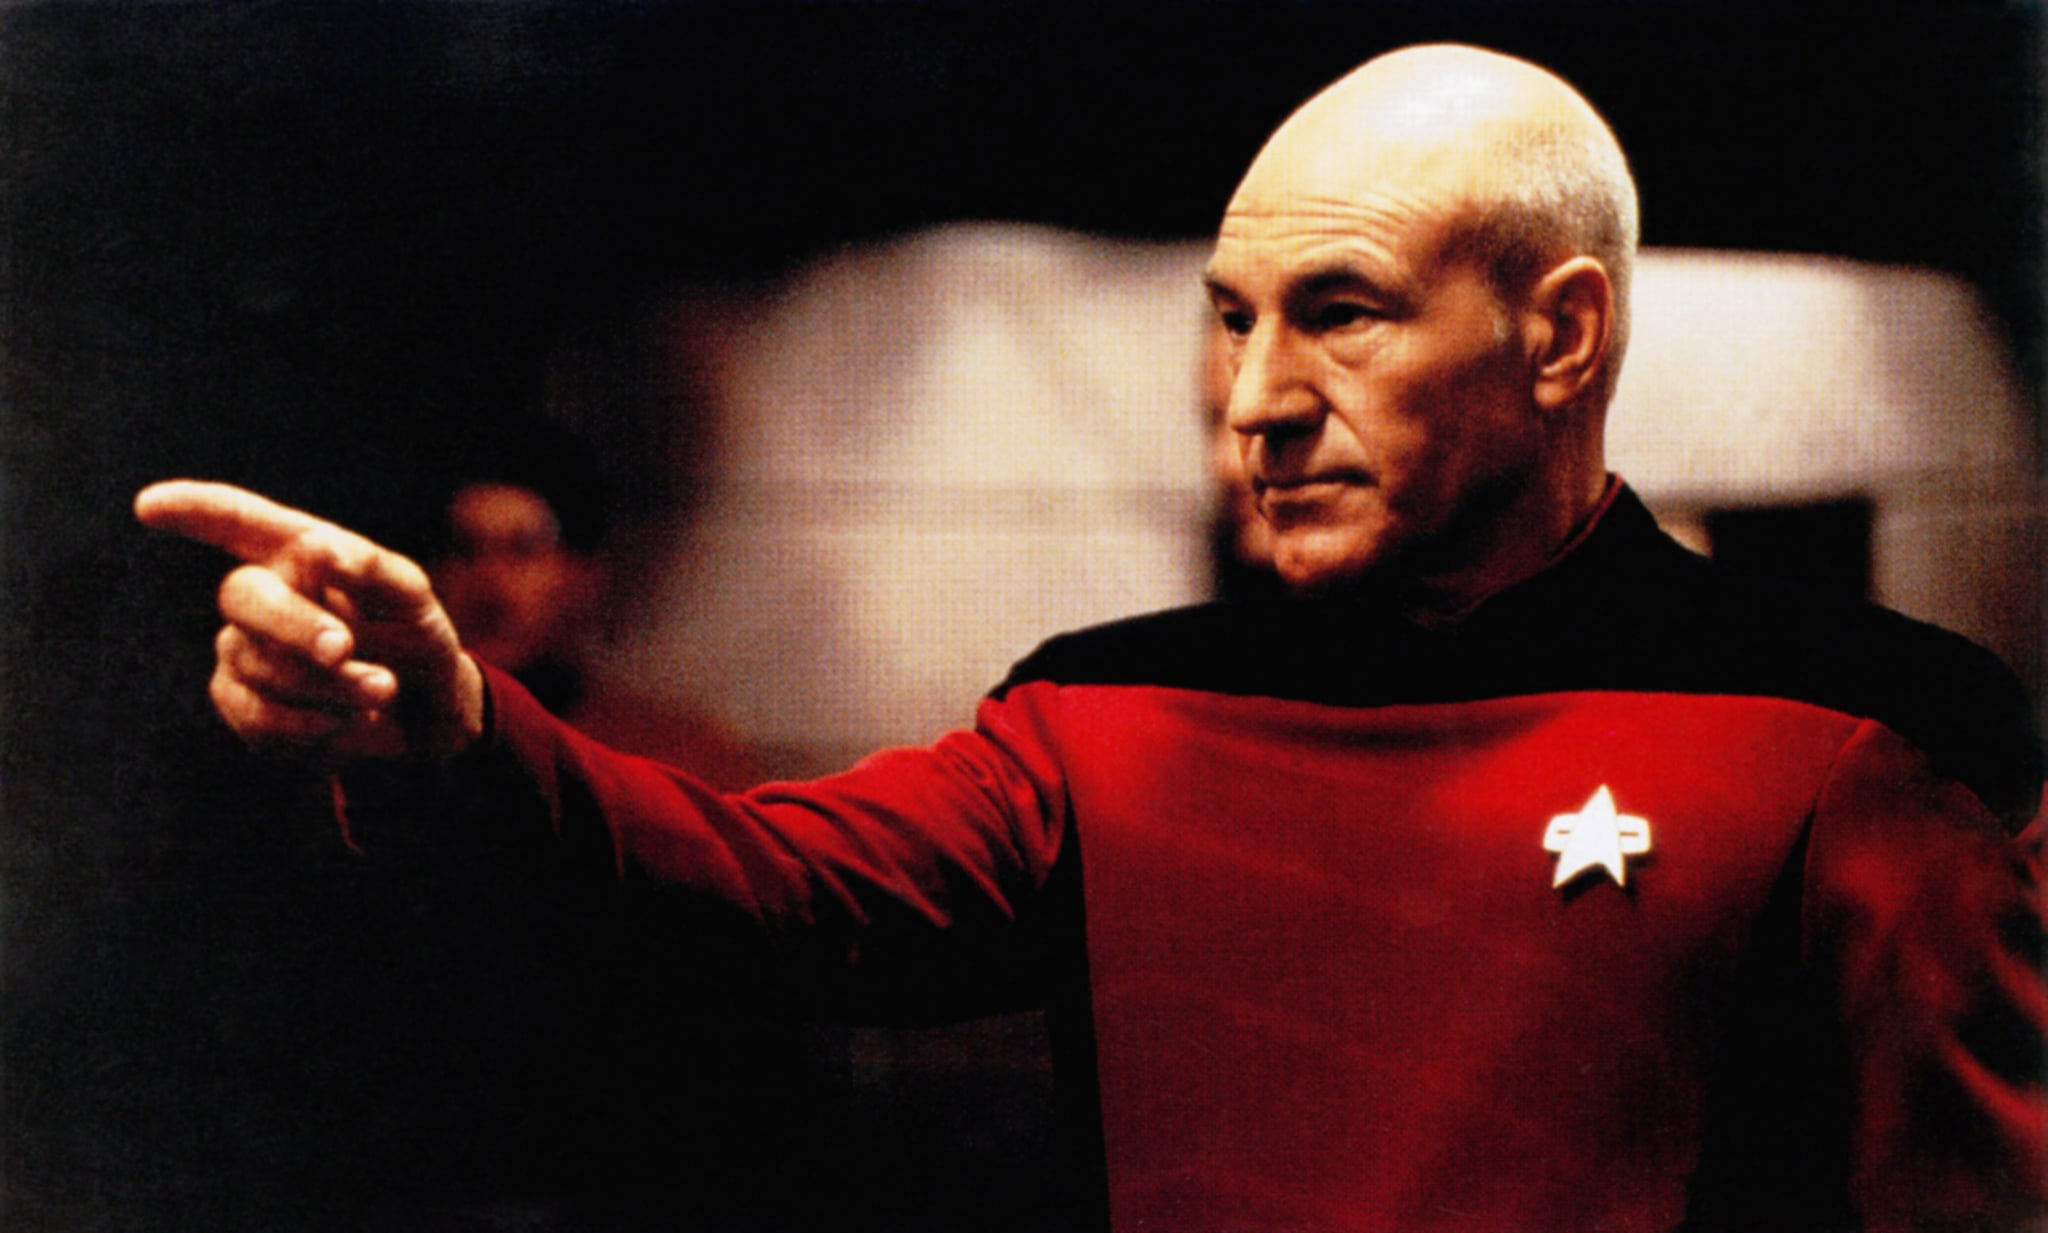 STAR TREK: GENERATIONS, Patrick Stewart, 1994, Paramount/courtesy Everett Collection